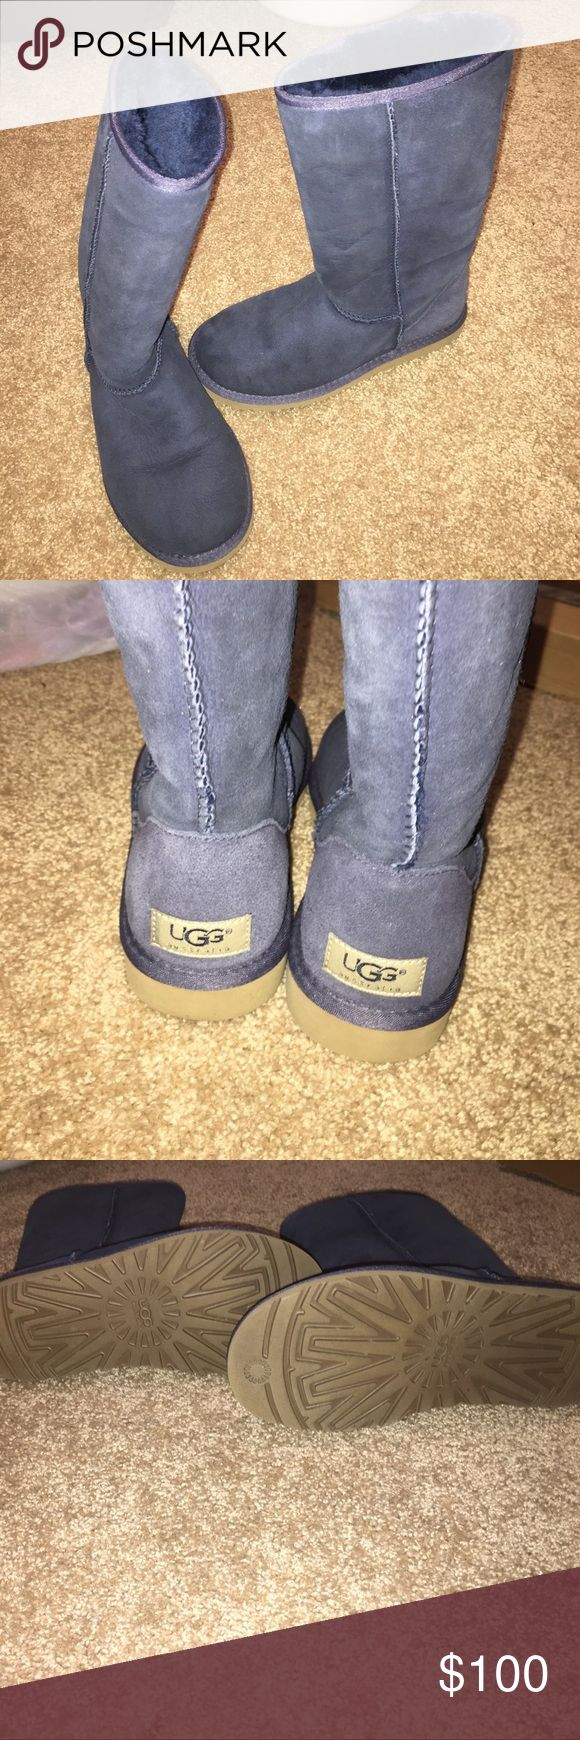 Classic Tall Navy Blue Uggs Almost perfect condition. Only worn twice. Size 6. Everything in tact! Look/feel brand new. UGG Shoes Winter & Rain Boots